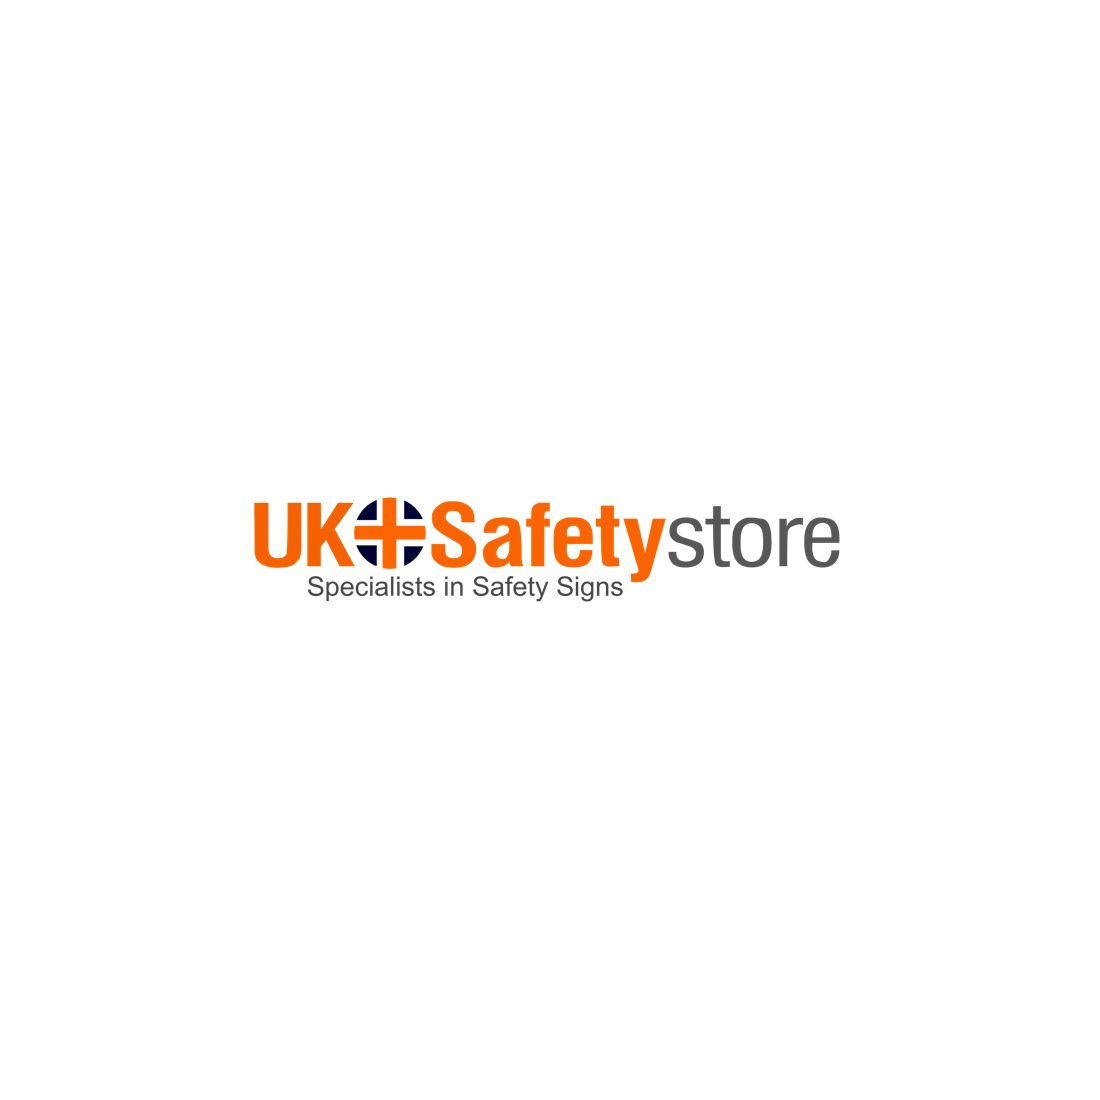 ilm health and safety These include nebosh national general certificate in health & safety, nebosh fire nebosh construction & nebosh environmental & ilm.